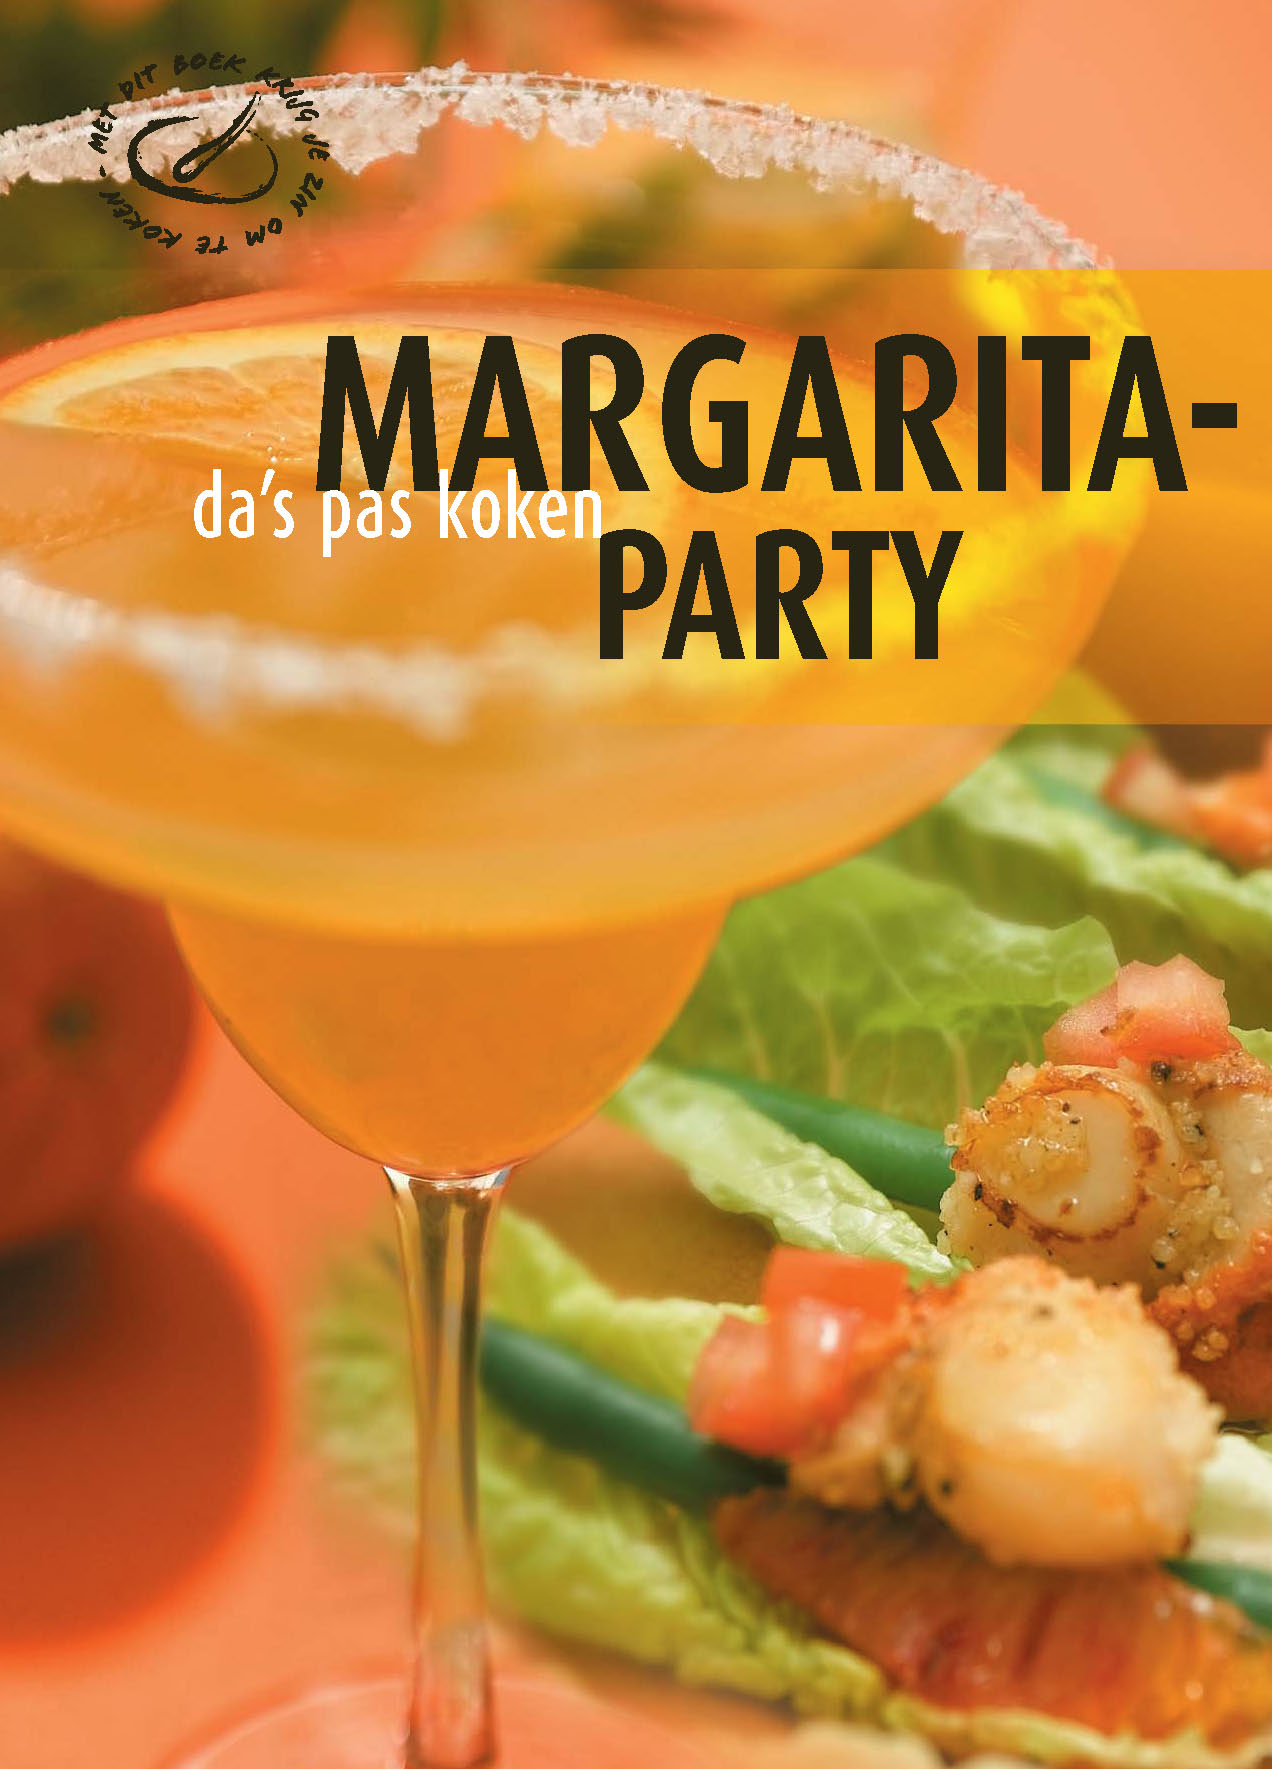 Margaritaparty - Da'S Pas Koken